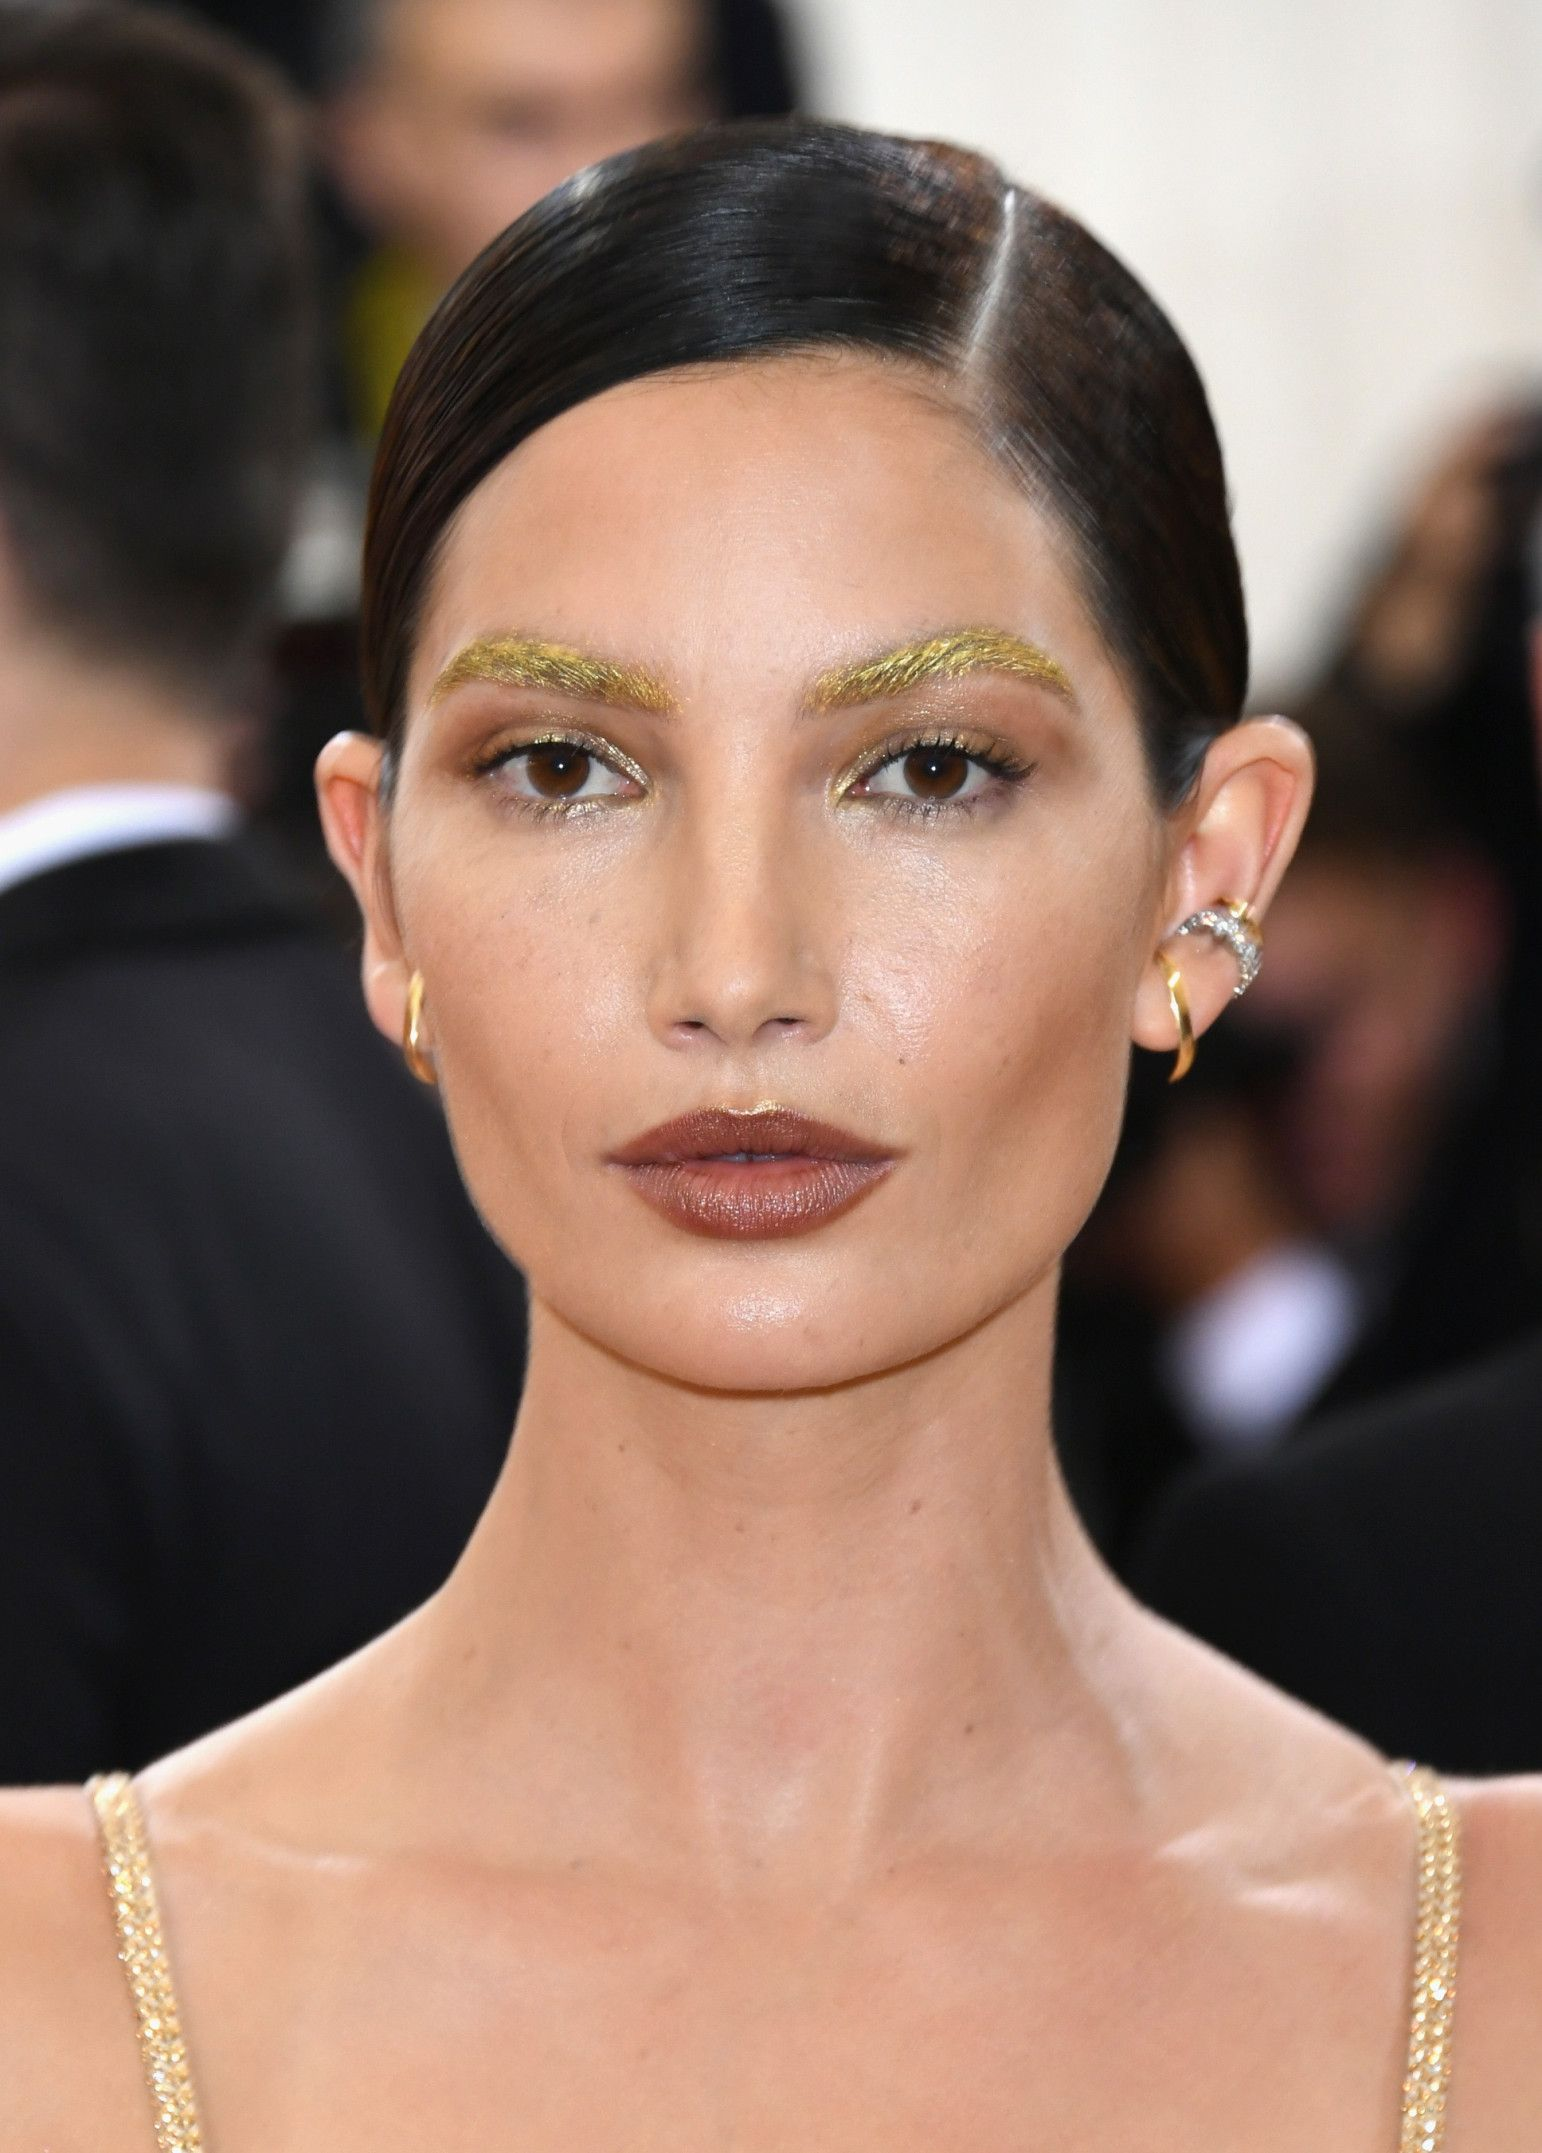 Lily Aldridge's gold brows and pale brown lips are so breathtaking